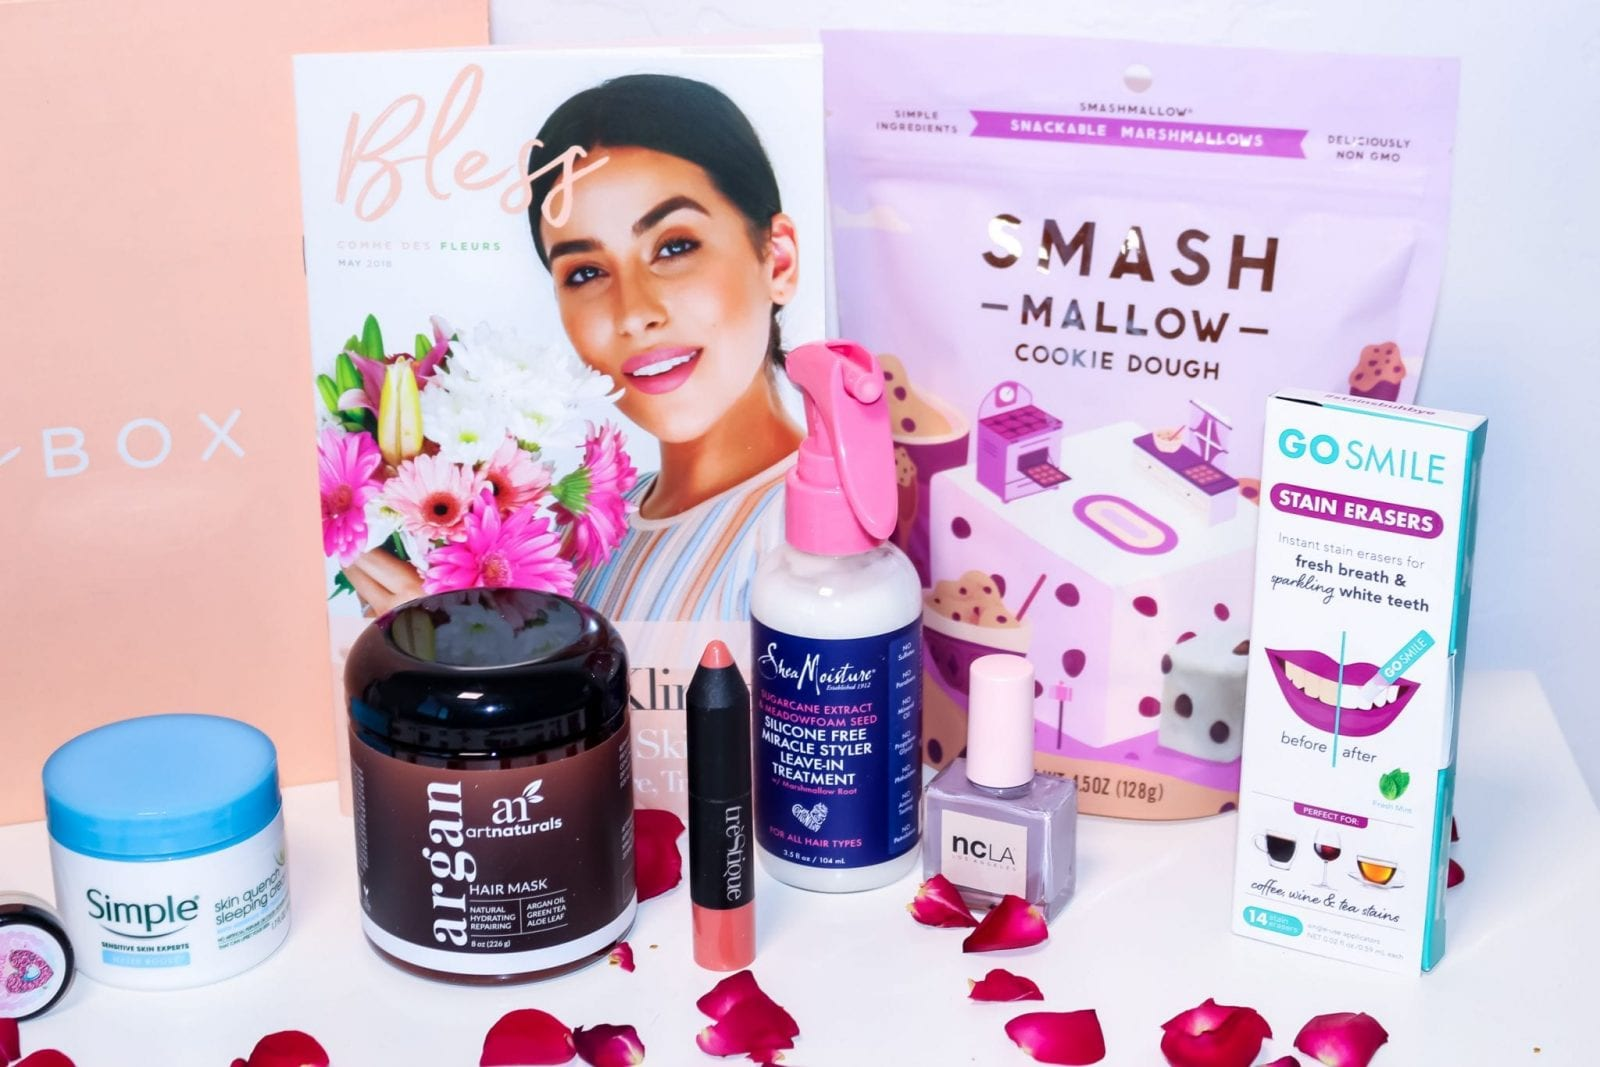 This is a product line up of the beauty, food, fashion and lifestyle picks in the May 2018 Bless Box.